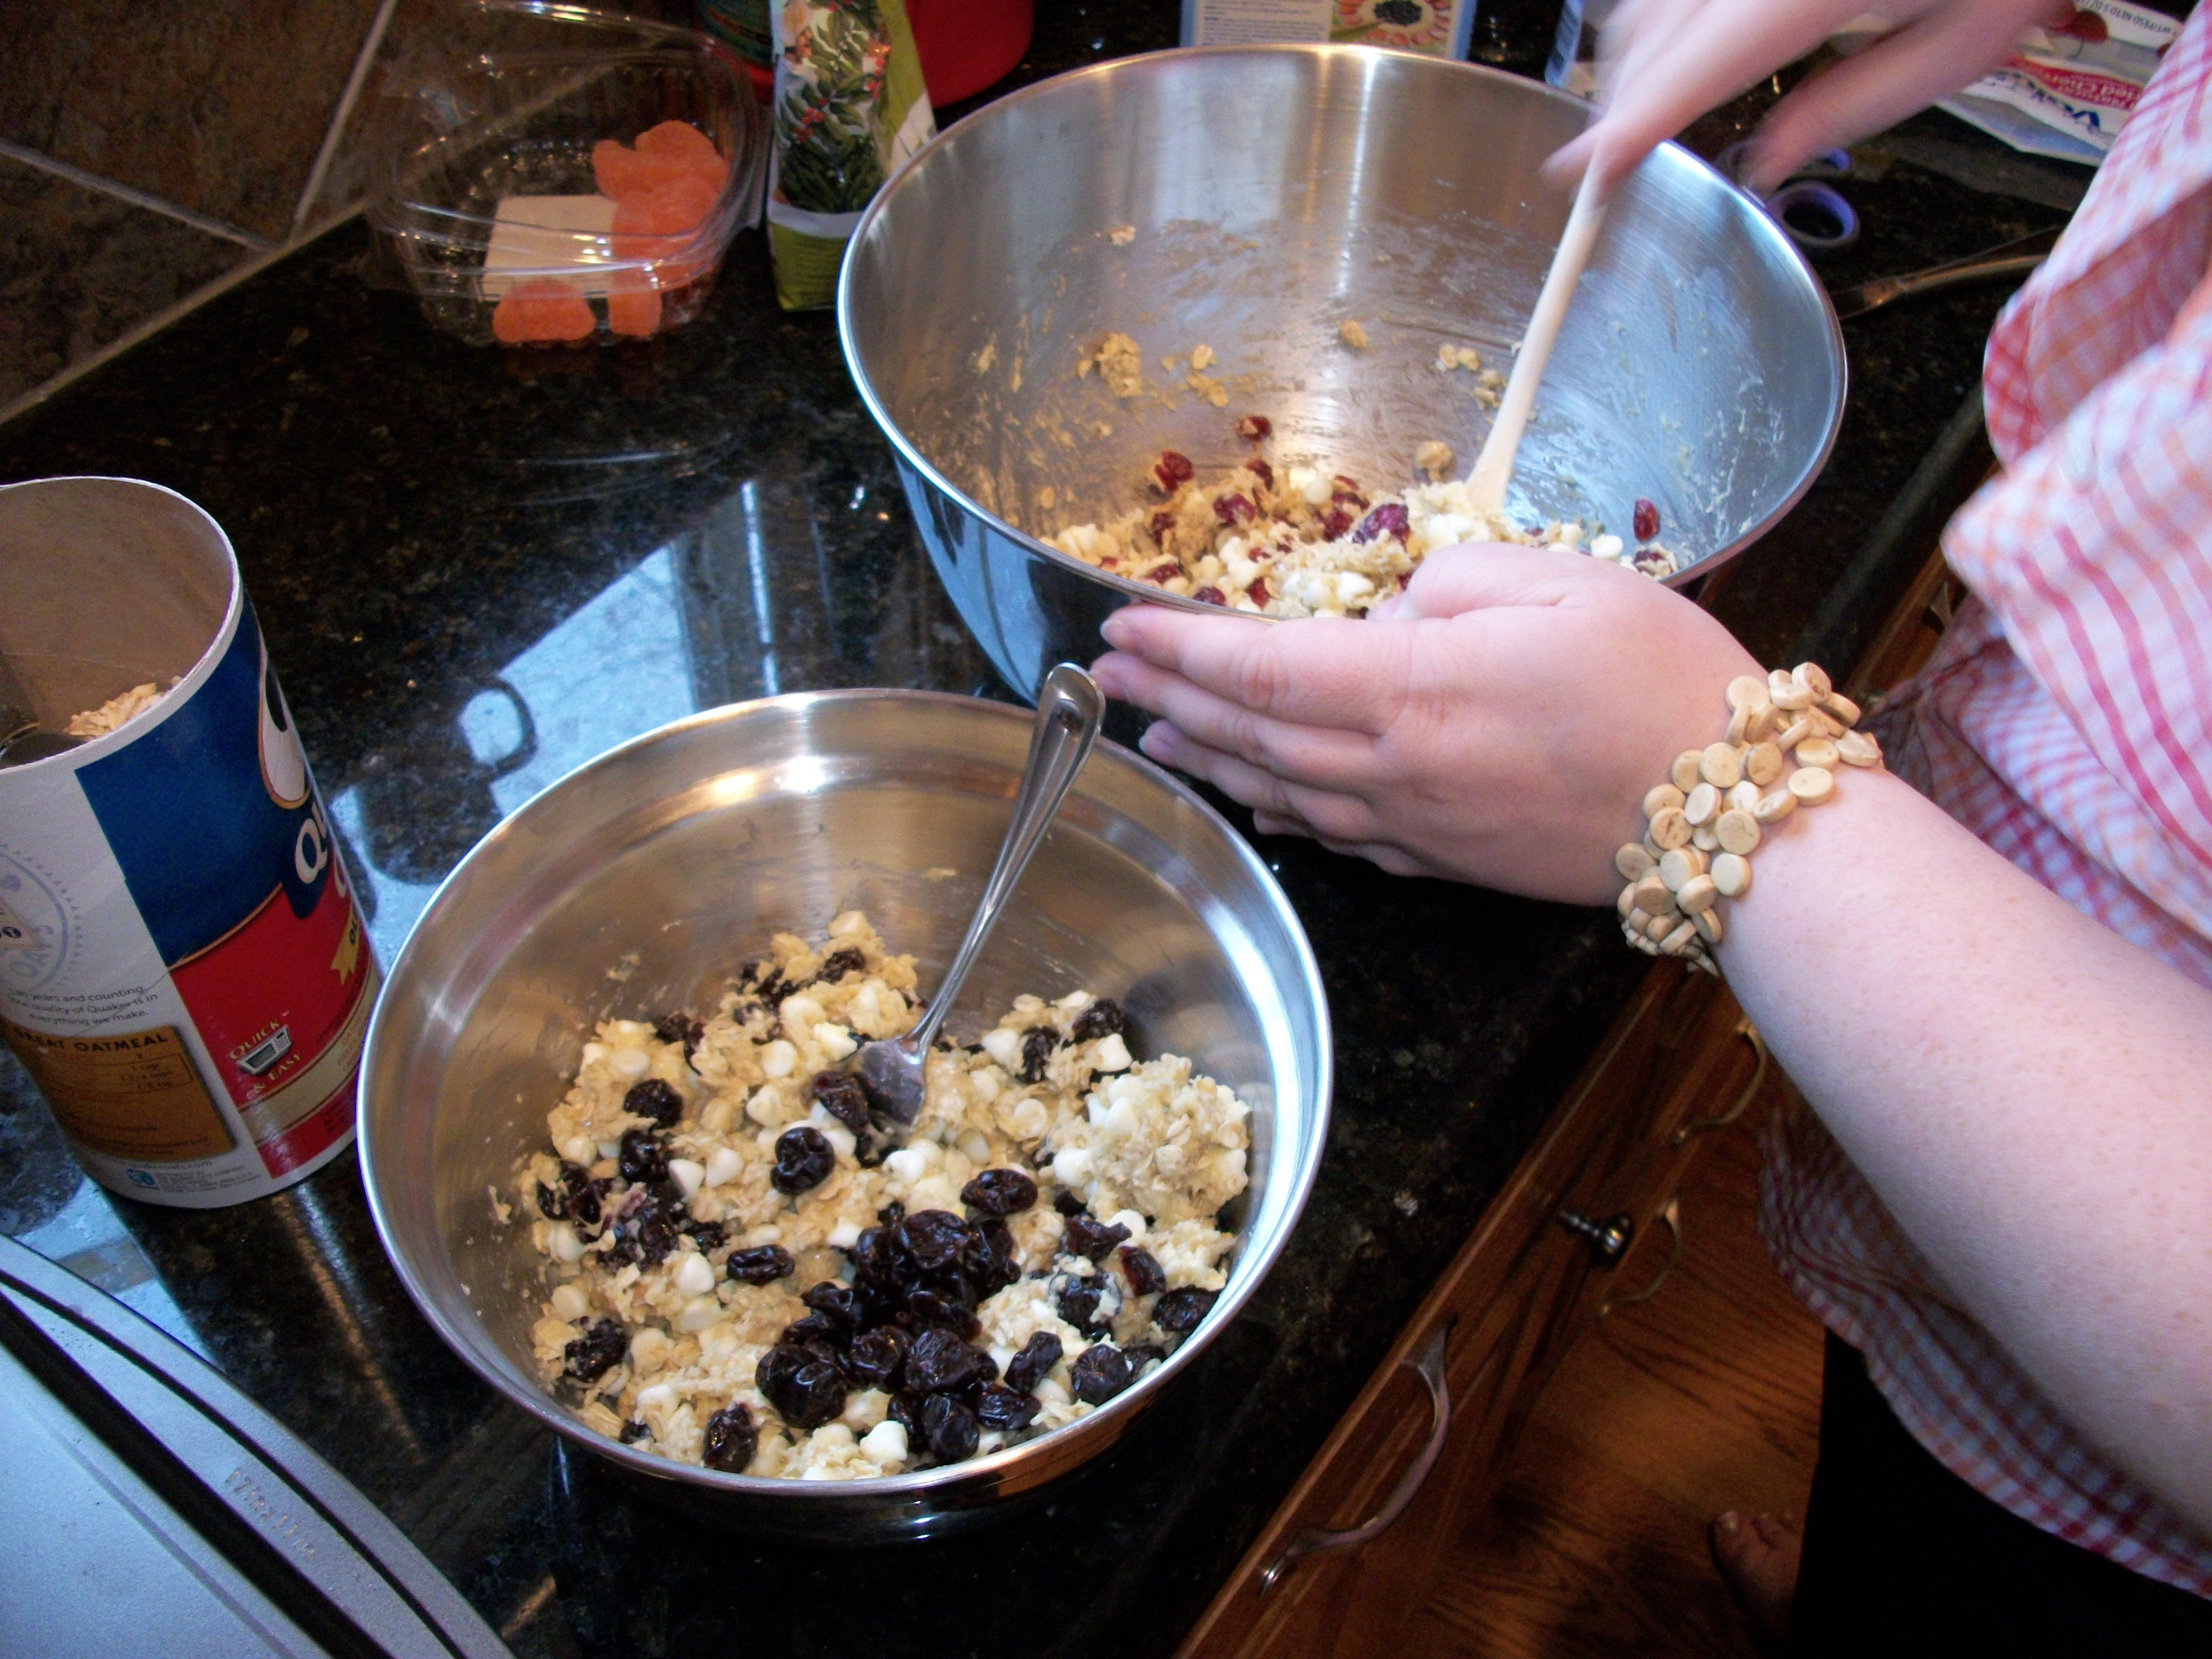 Jocelyn mixing the white chocolate oatmeal cookies with cranberries and cherries